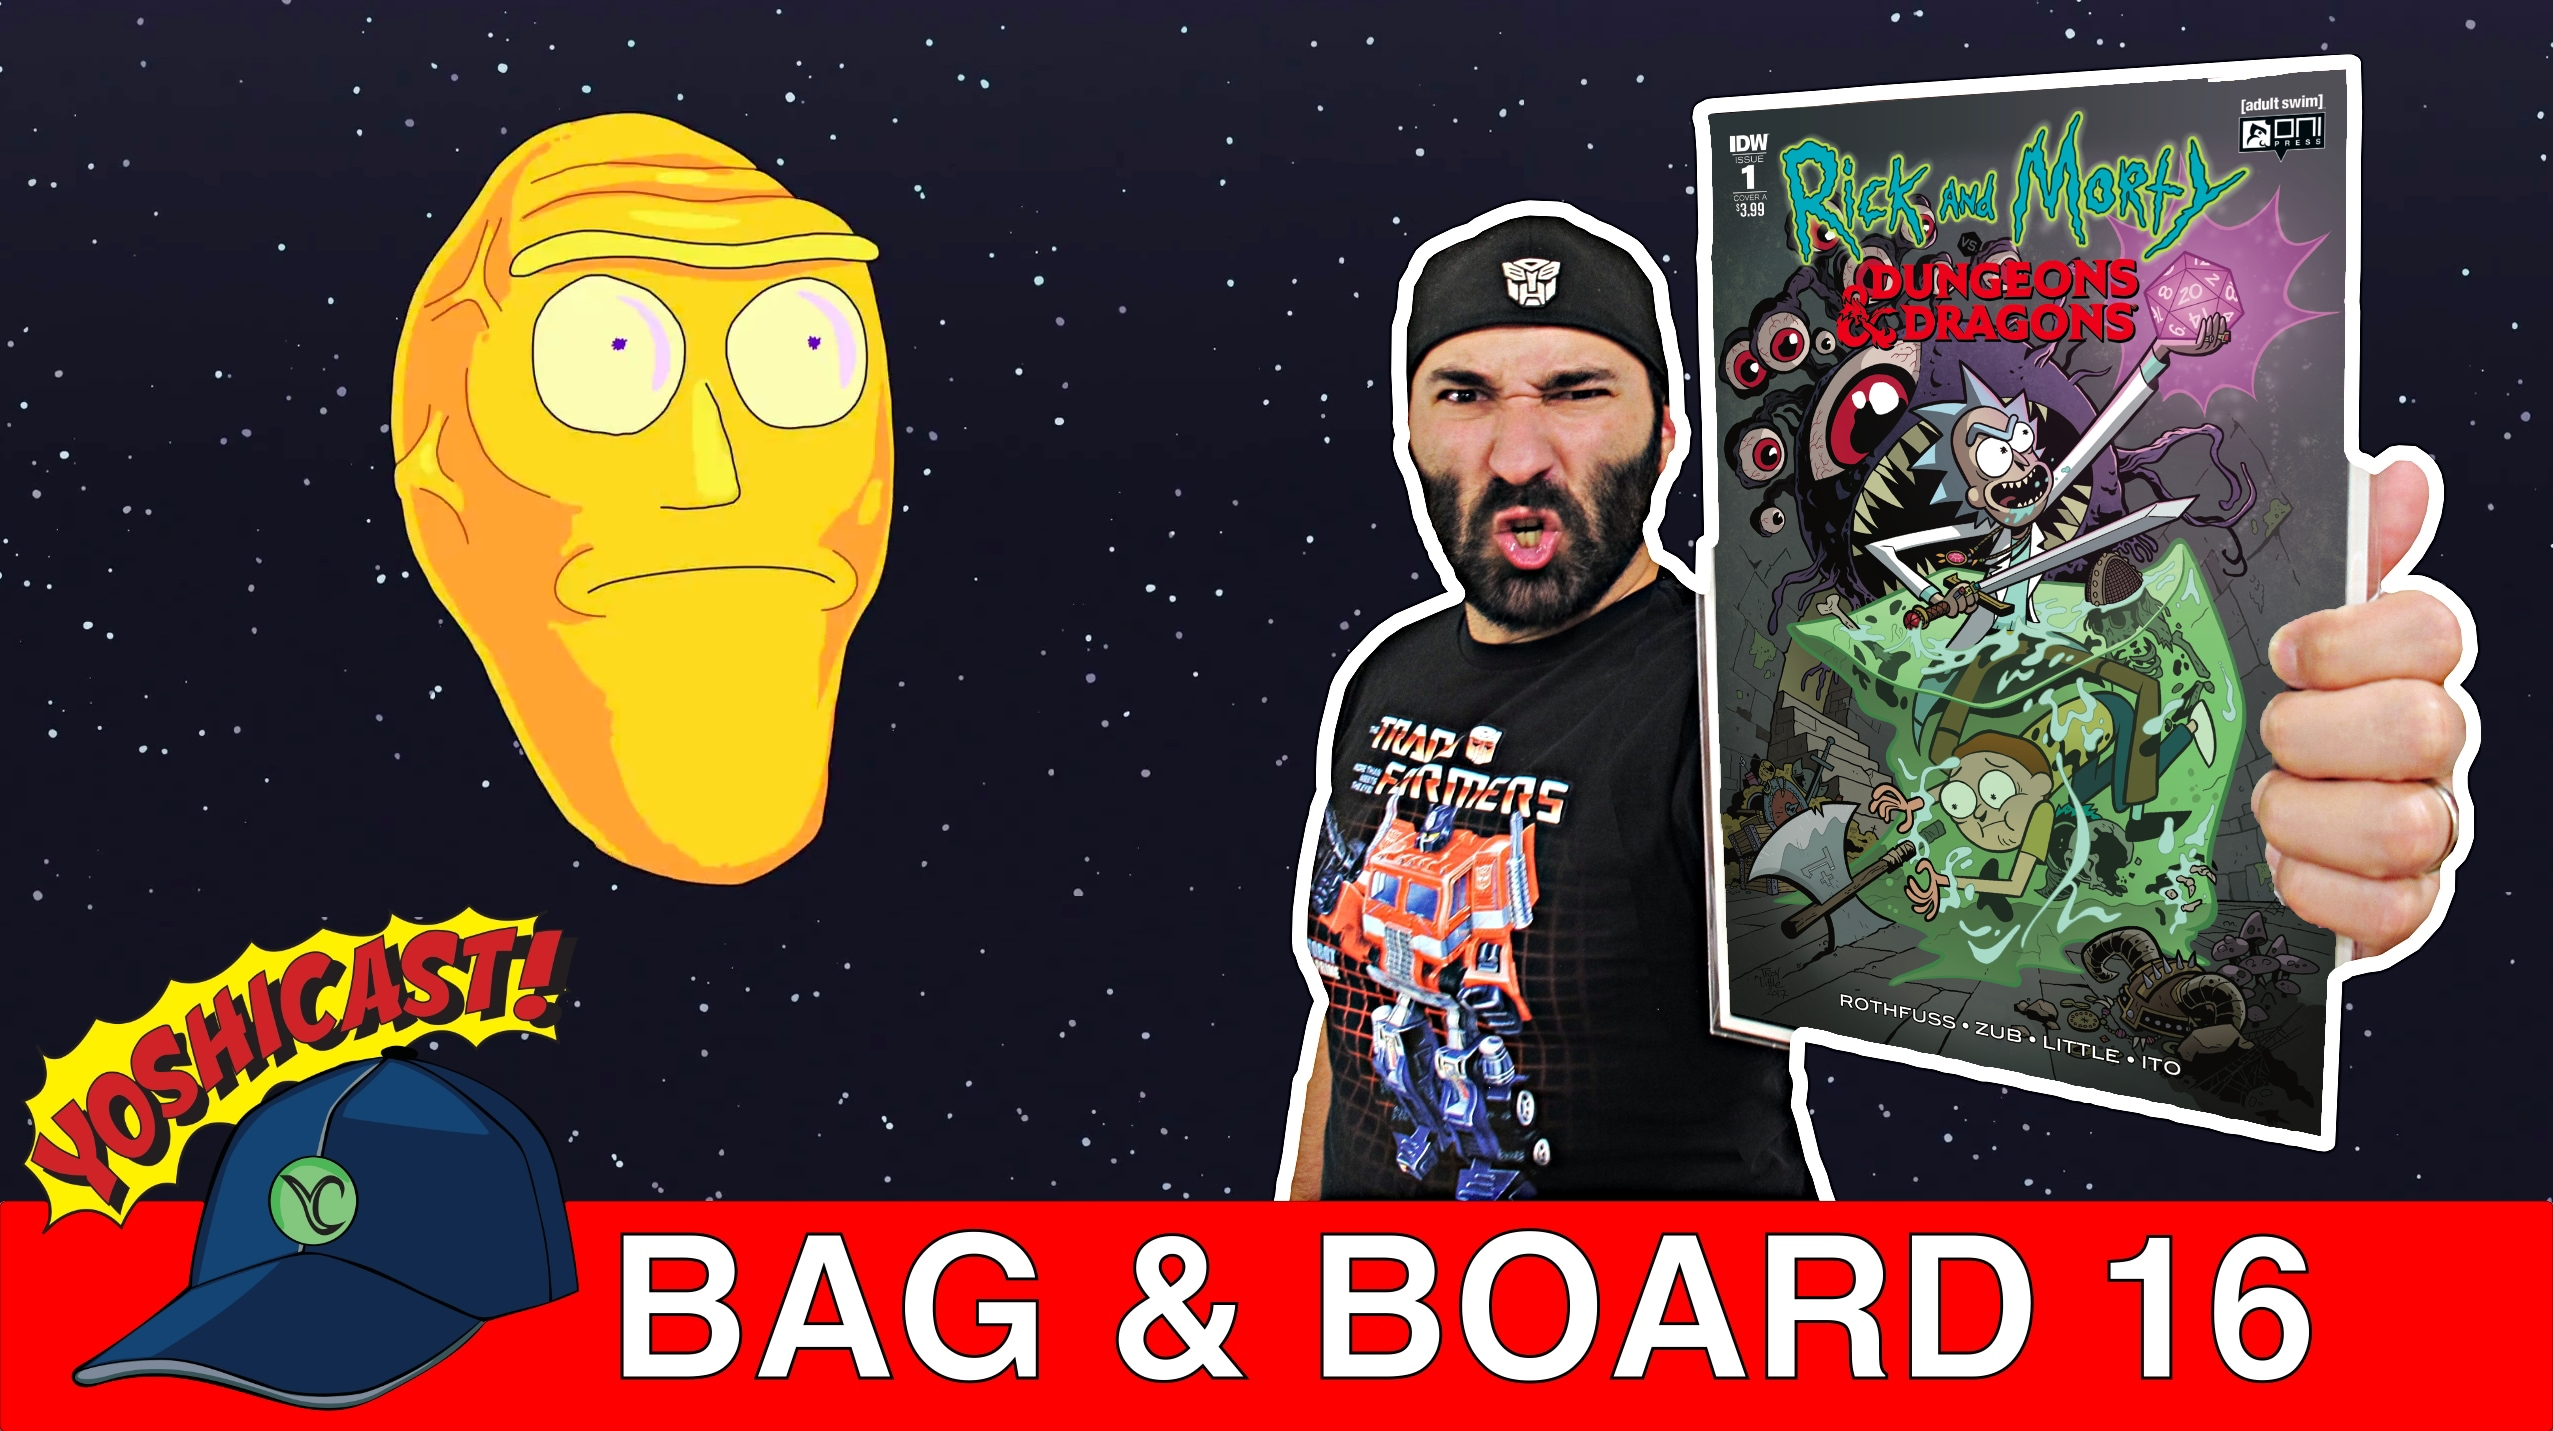 Bag & Board 16 | Rick And Morty VS Dungeons & Dragons, Bone Parish, Catwoman, Joker, Fantastic Four